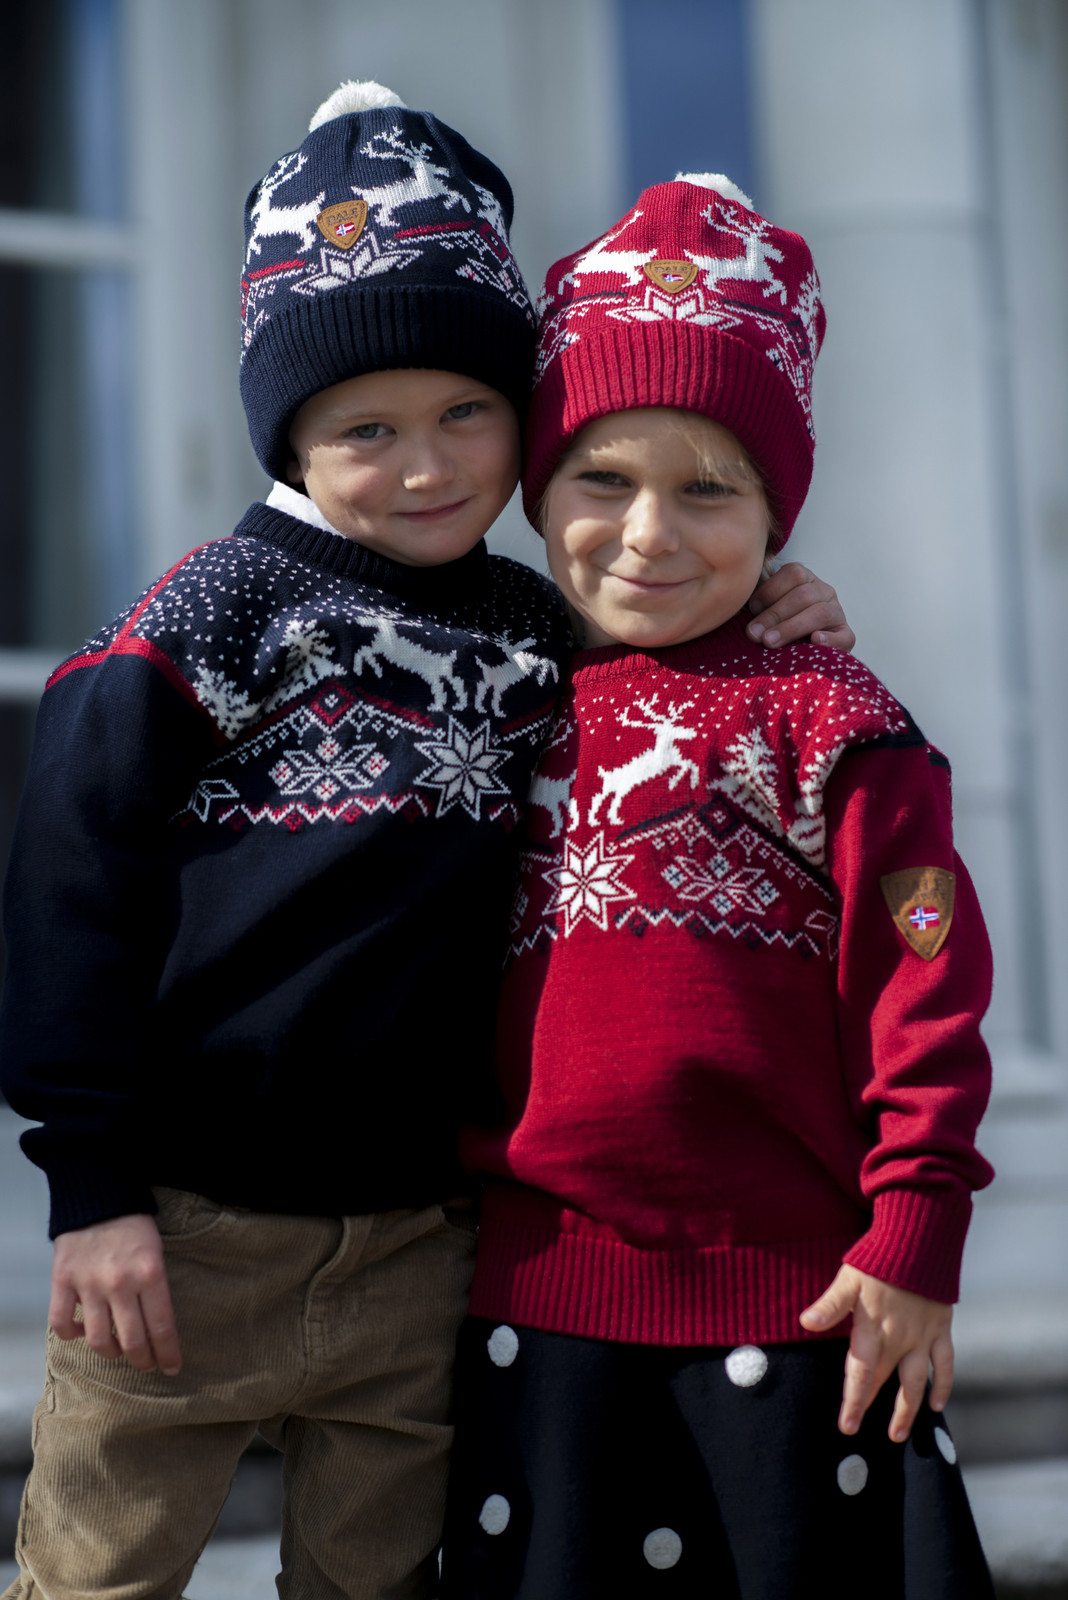 Kids wearing Dale of Norway Dale Christmas sweaters in Navy, 93941-C, and Red Rose, 93941-B